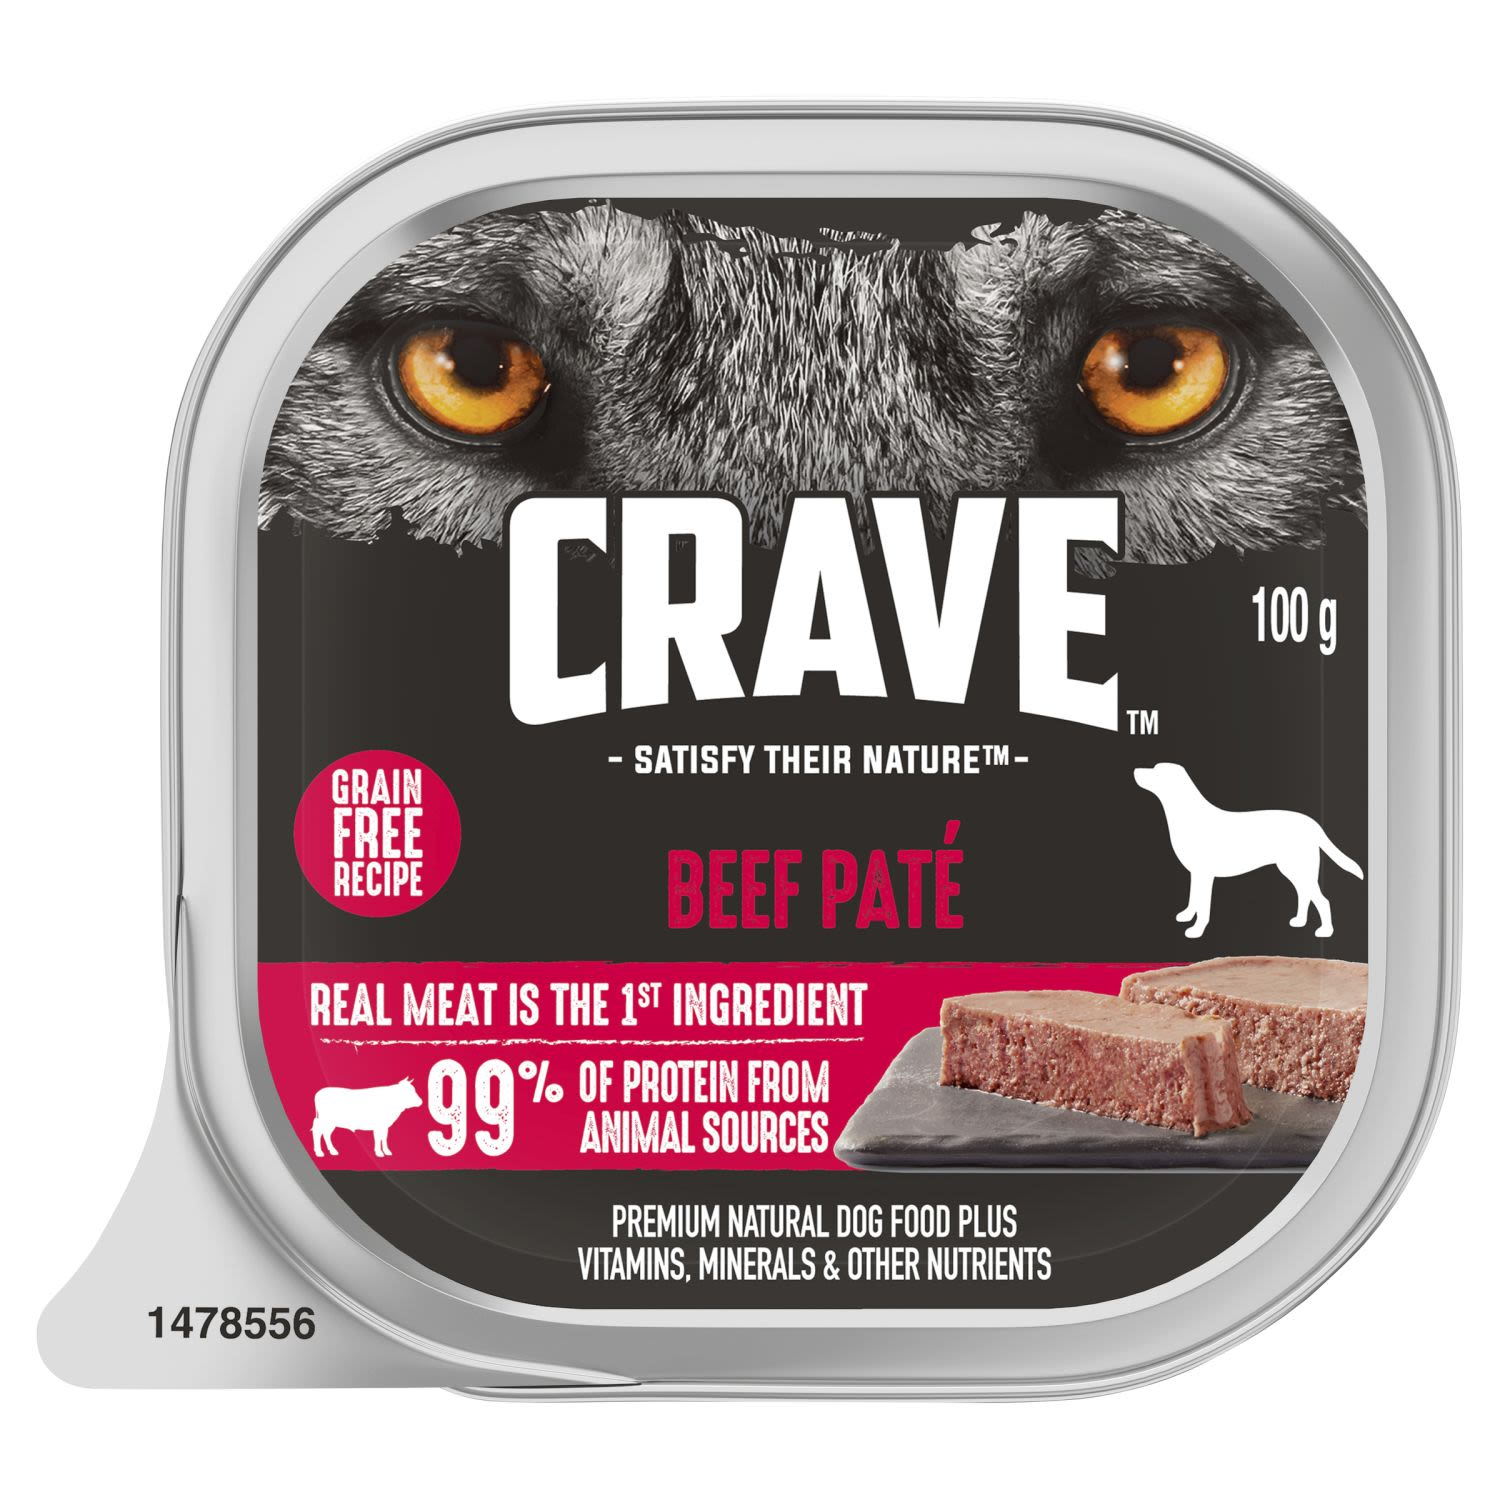 Crave Wet Dog Food Beef Pate Tray, 100 Gram